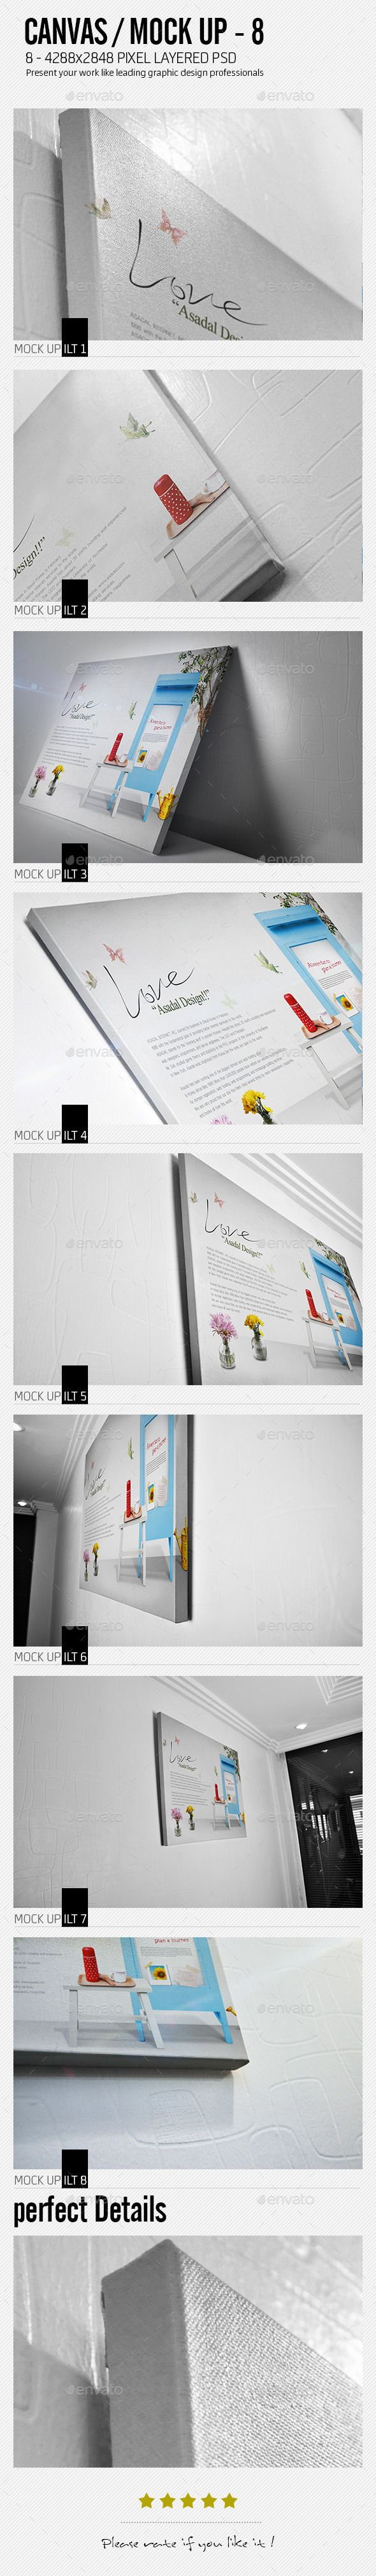 Ilt canvas mock up   Canvases, Business presentation and Psd templates